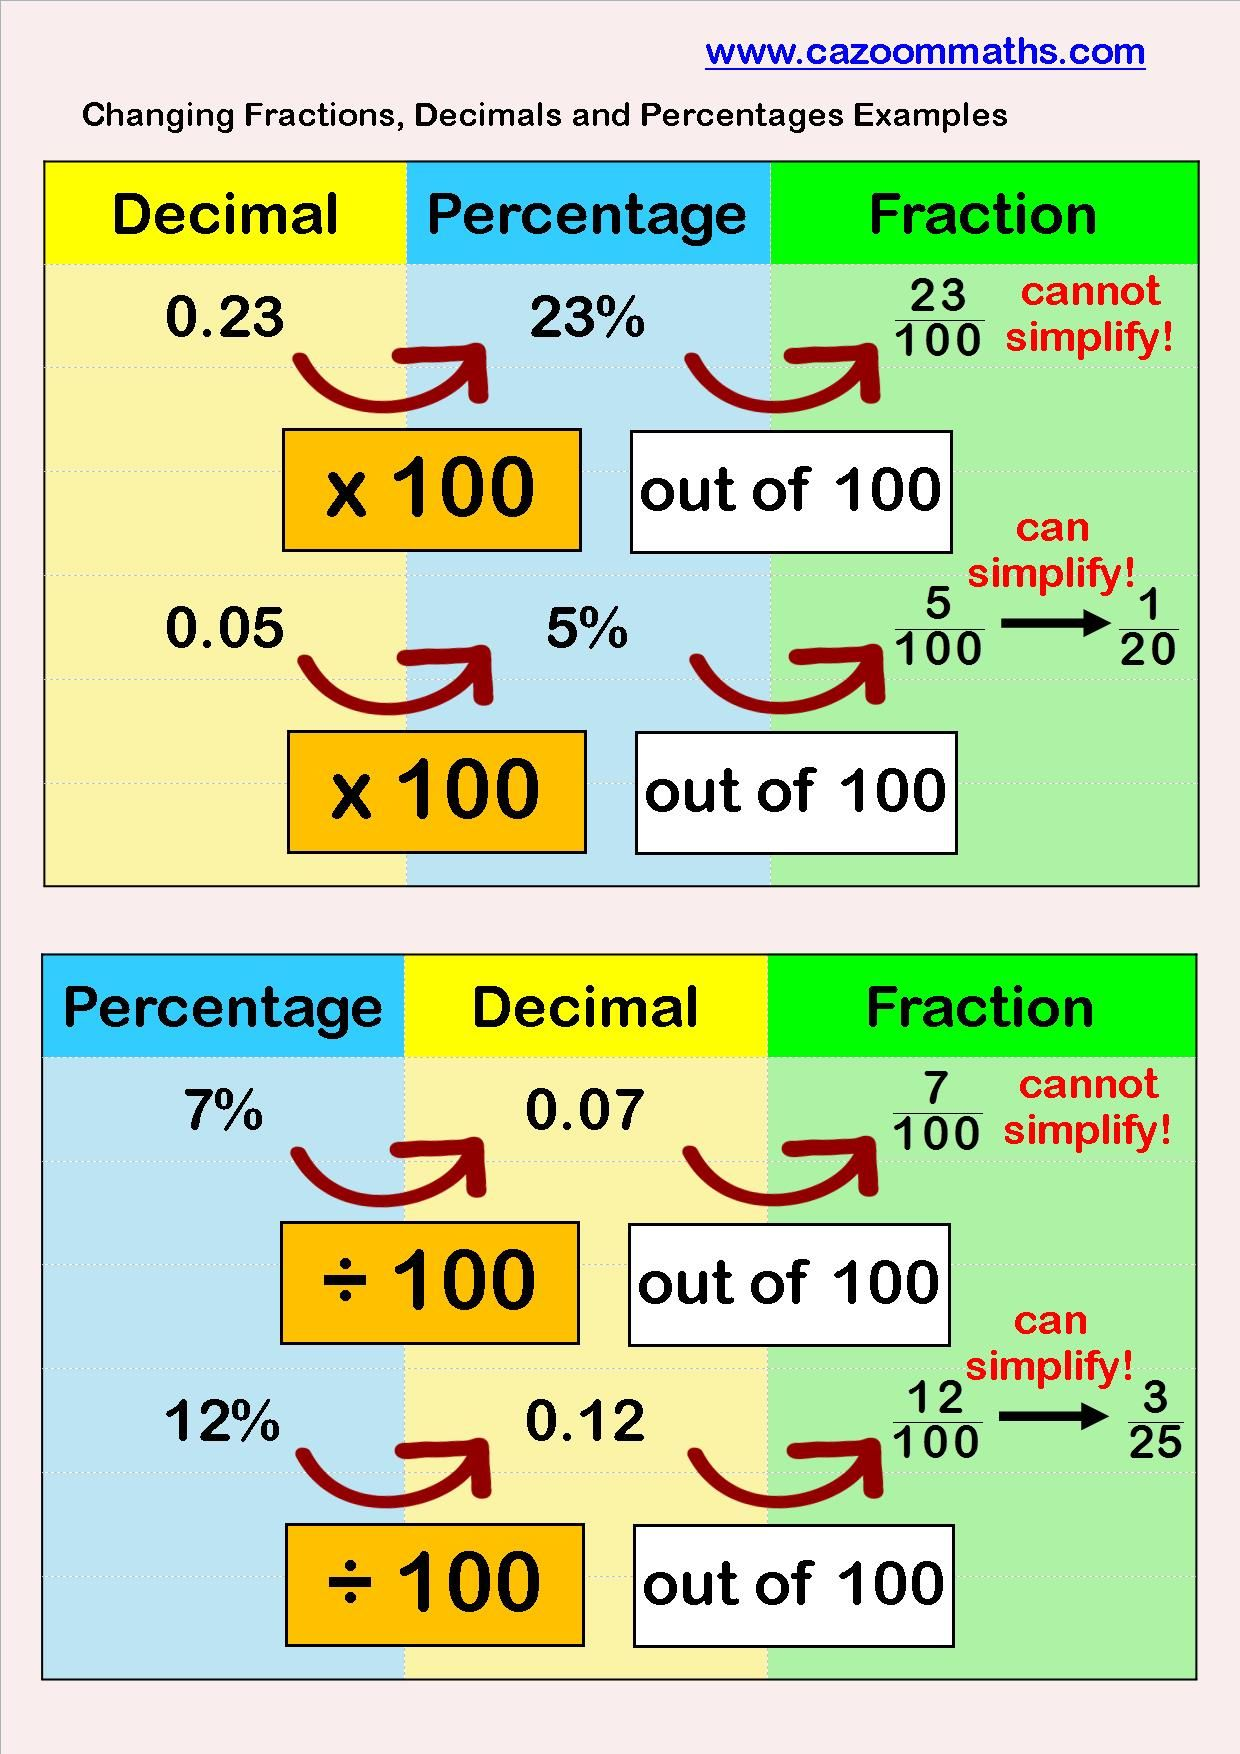 Fractions To Decimals To Percentages Example